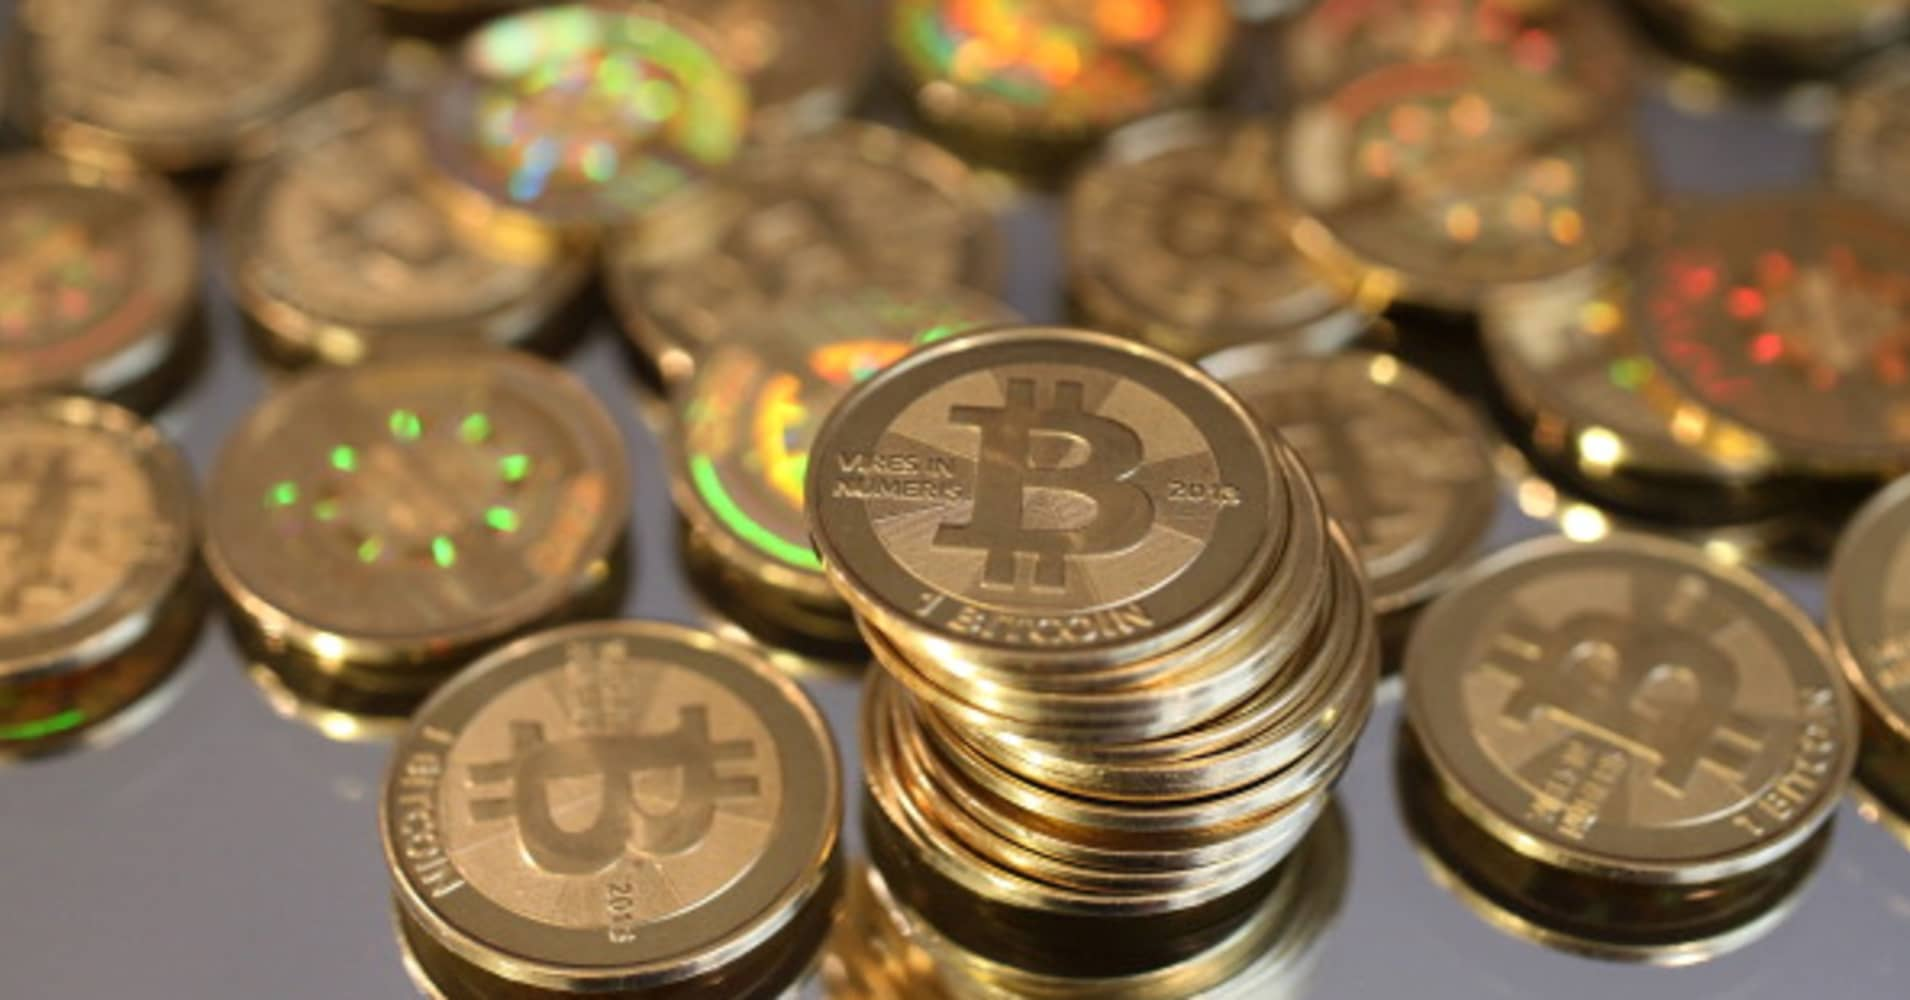 Bitcoin rallies to hit a one-month high but experts warn of a volatile upcoming event - CNBC